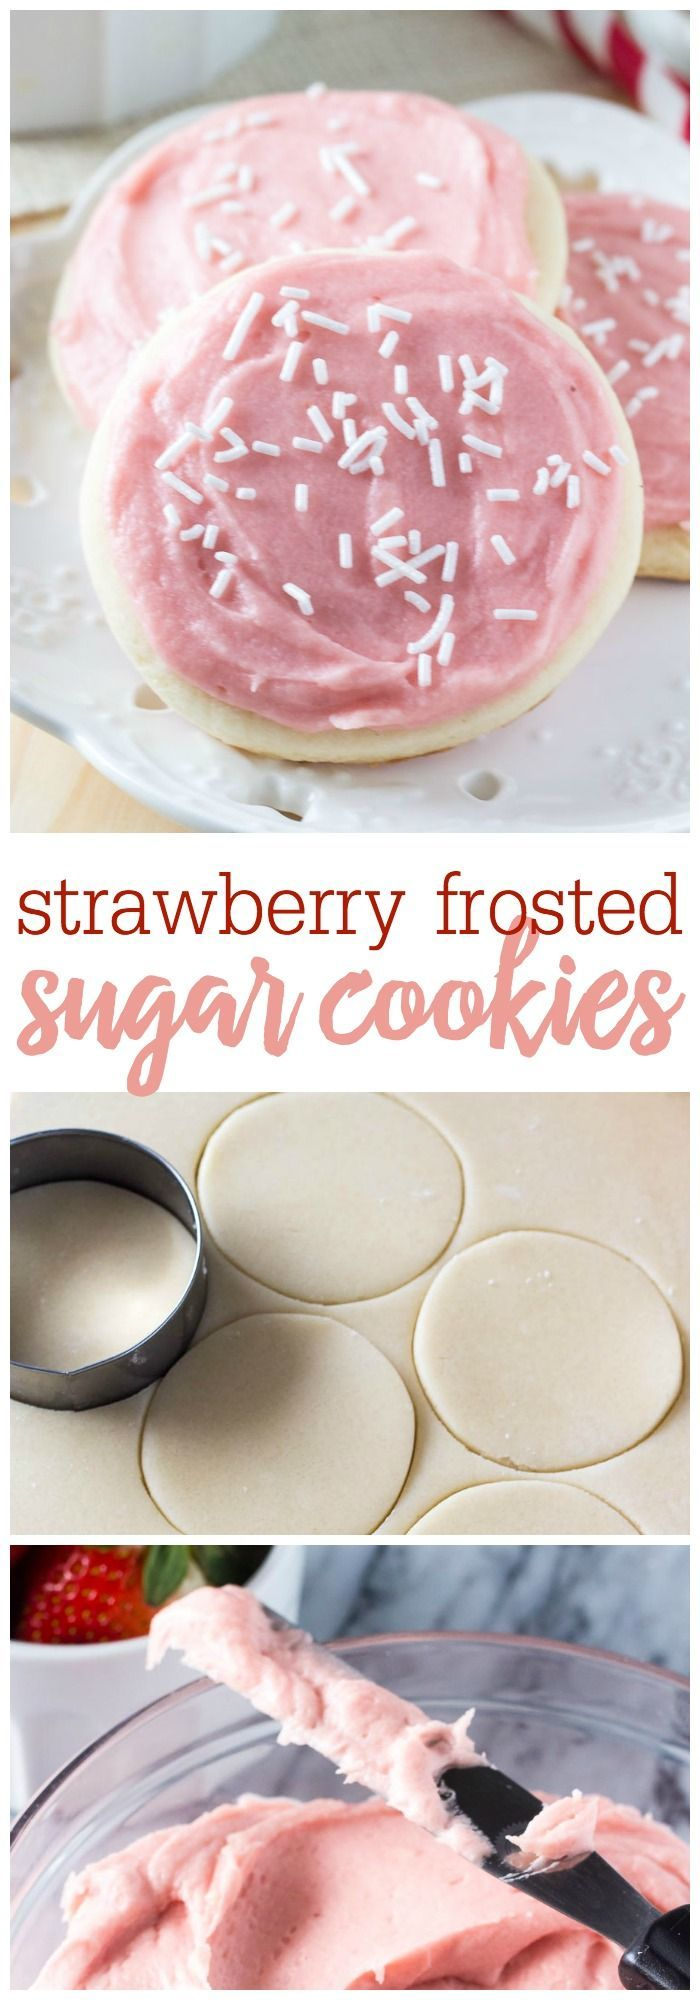 These strawberry frosted sugar cookies are so soft that they melt in your mouth. Then the strawberry frosting makes them extra special. If you love Lofthouse sugar cookies - you need to try these!